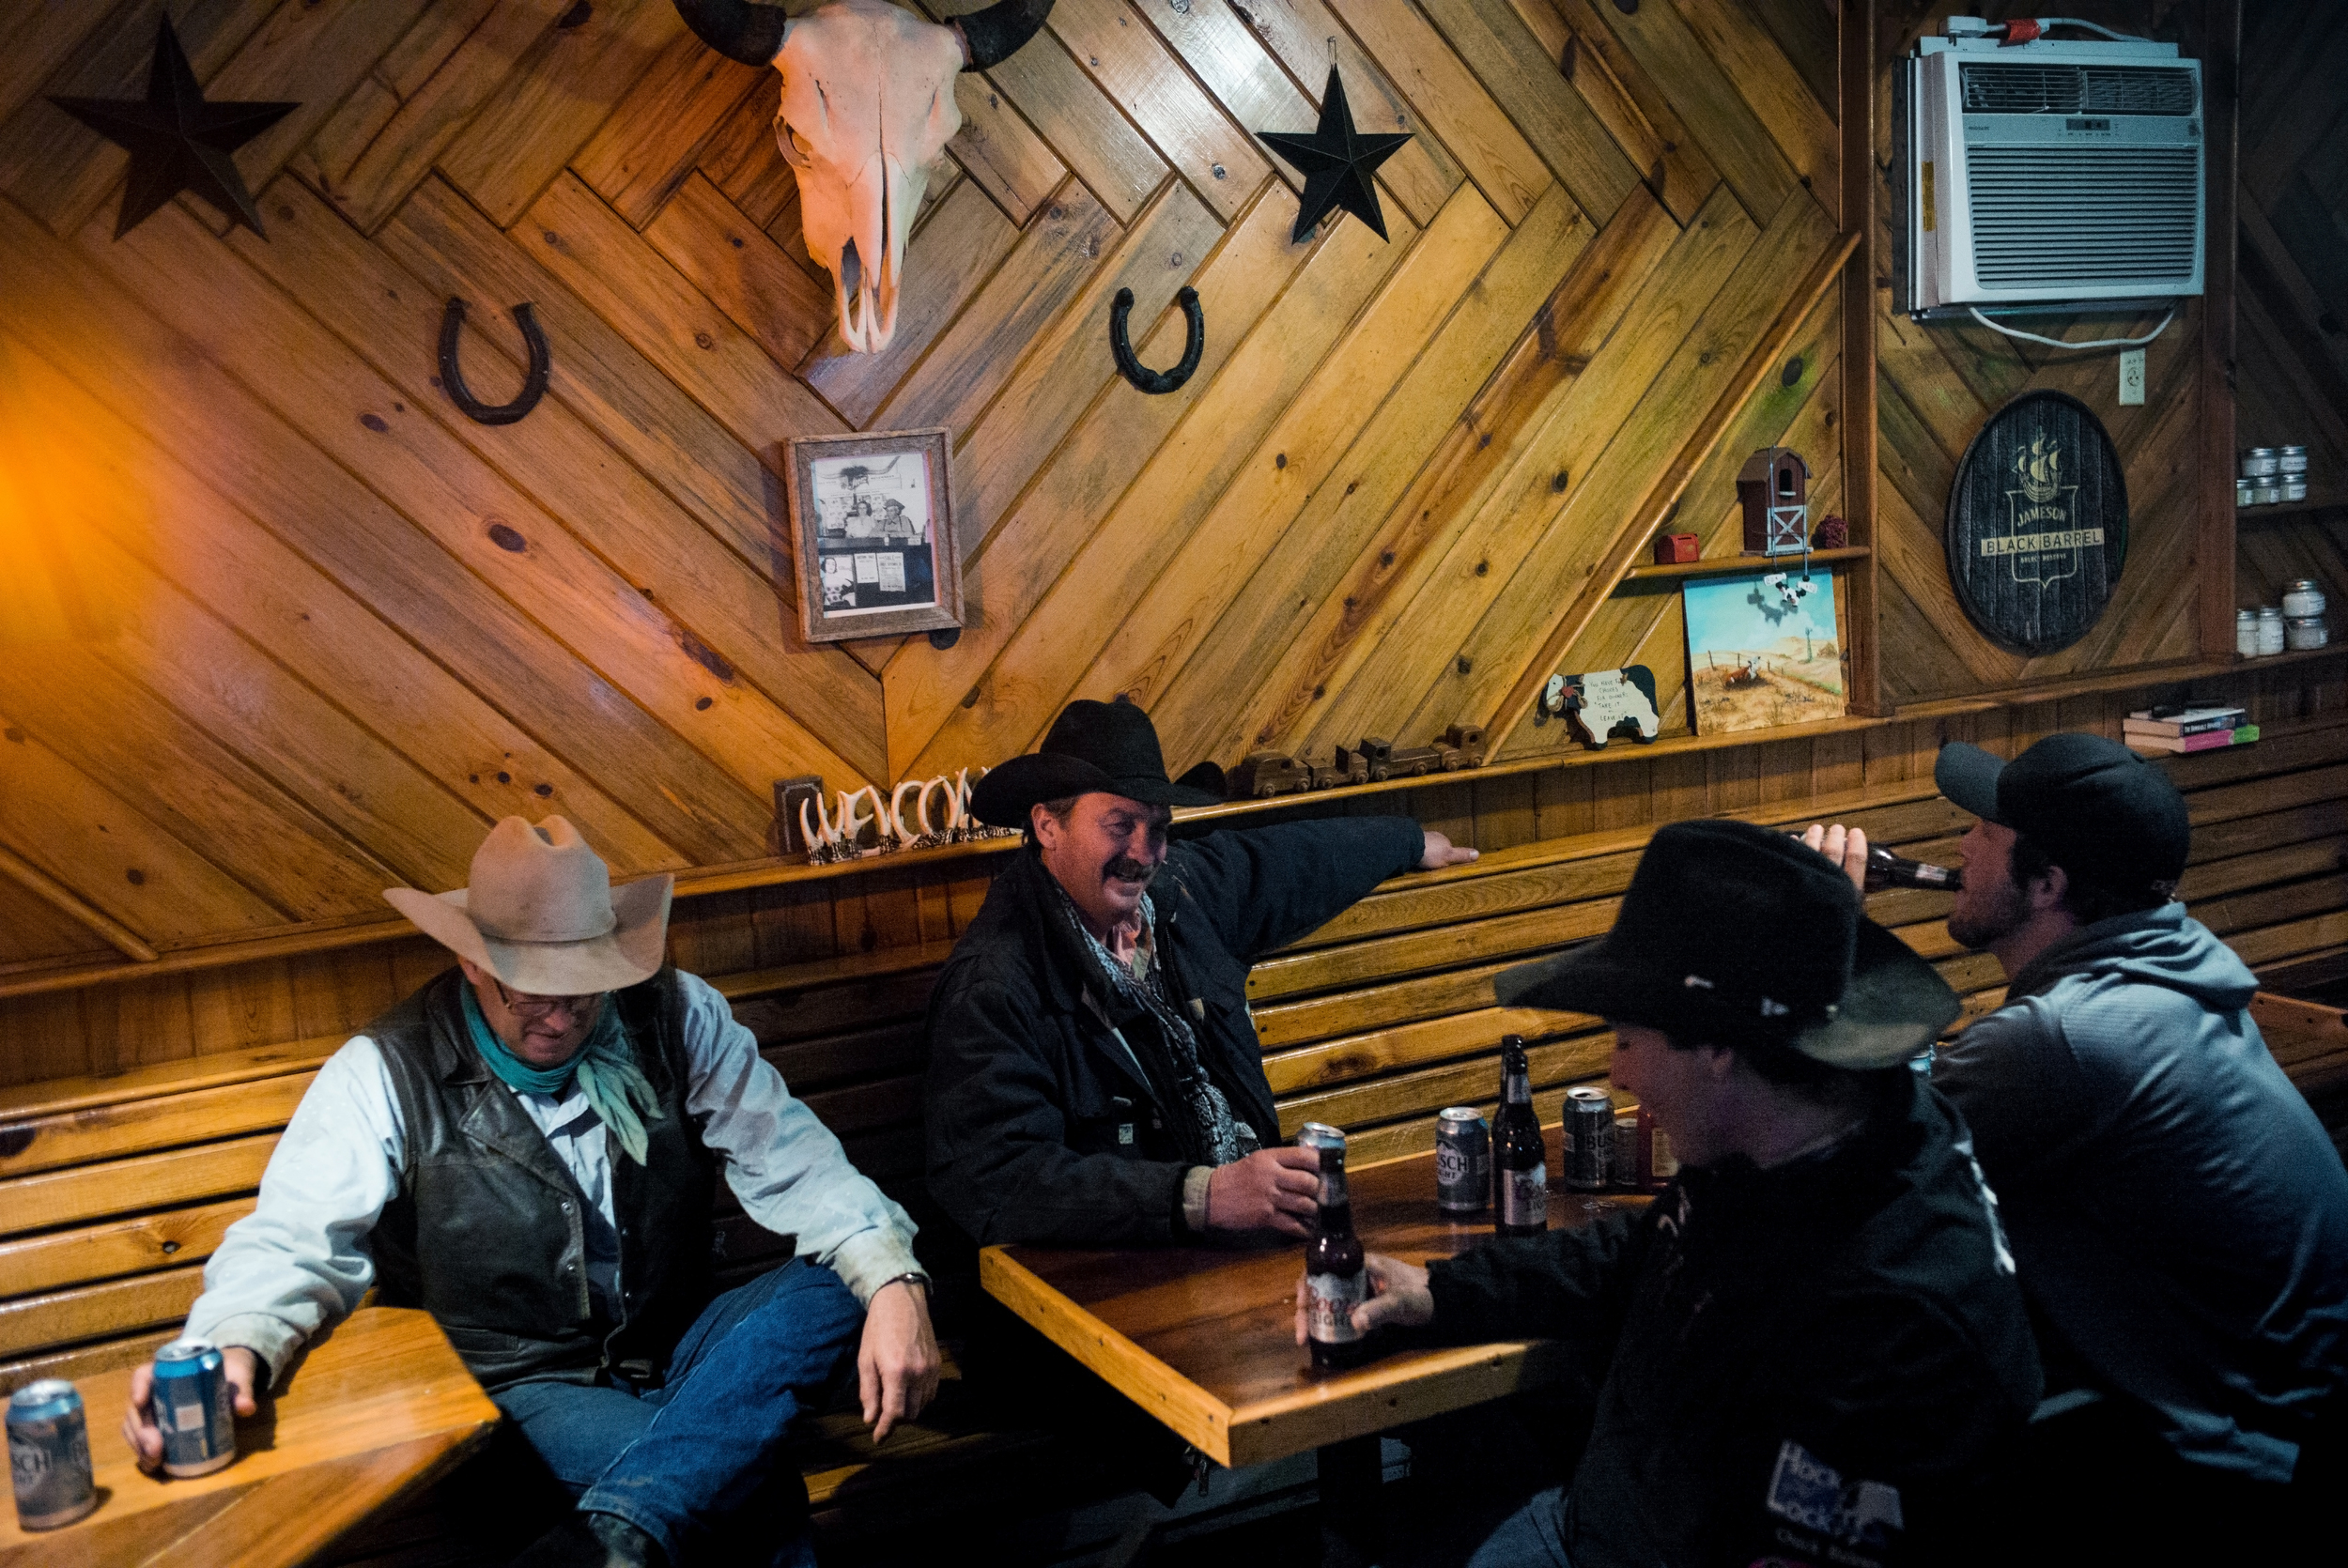 "45º31'48.9""N, 102º12'59.8""W. 123 miles from the nearest McDonald's.  Men drink at Smoky's Bar and Grill during an uncommon break during the spring calving season in Meadow, SD on April 15, 2018. Winter has dragged on into mid-April in South Dakota and ranchers spent many days preparing for an incoming winter storm that brought back memories of storms in 2013 and 1997 that killed hundreds of thousands of cattle and drove some to suicide."